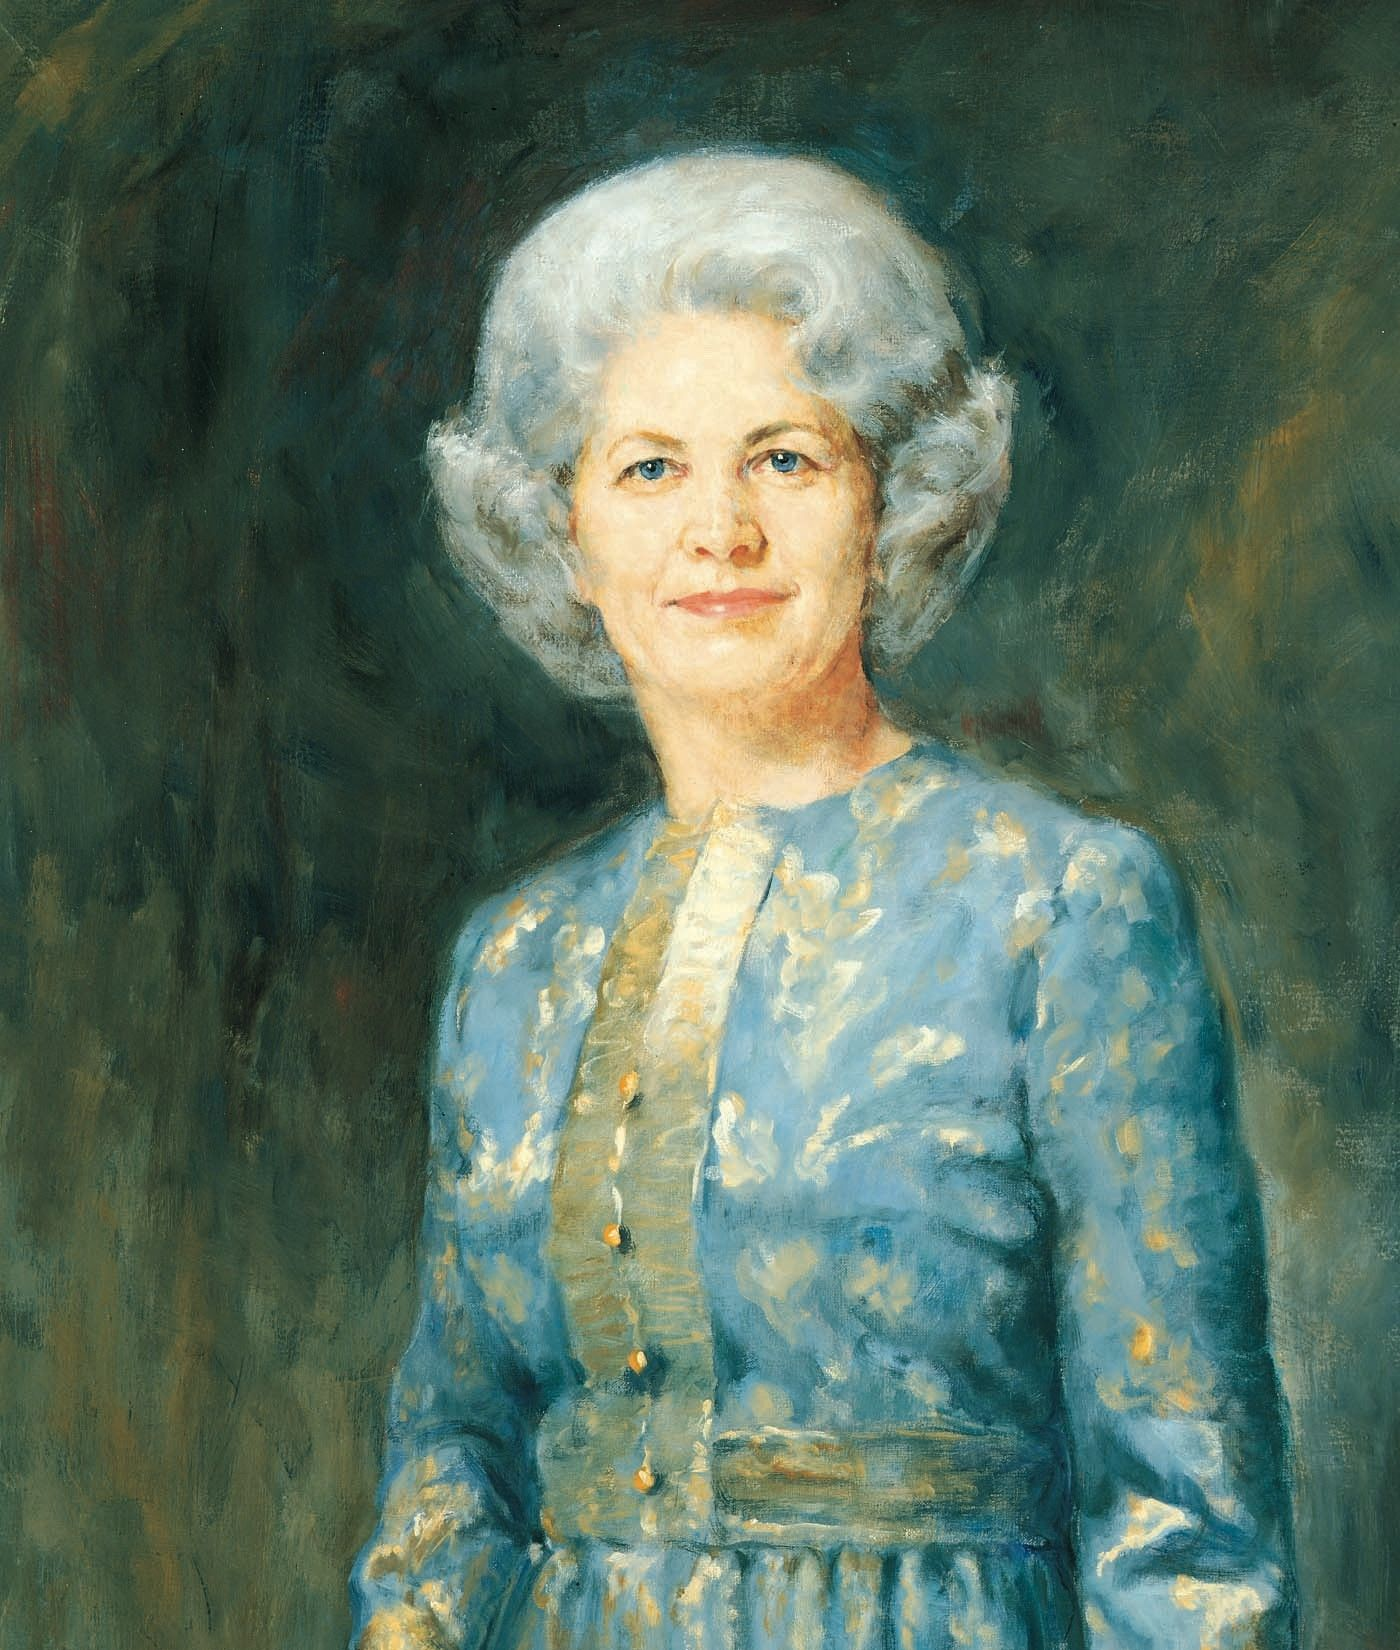 A portrait of Barbara Bradshaw Smith, who was the 10th general president of the Relief Society from 1974 to 1984; painted by Cloy Paulson Kent.